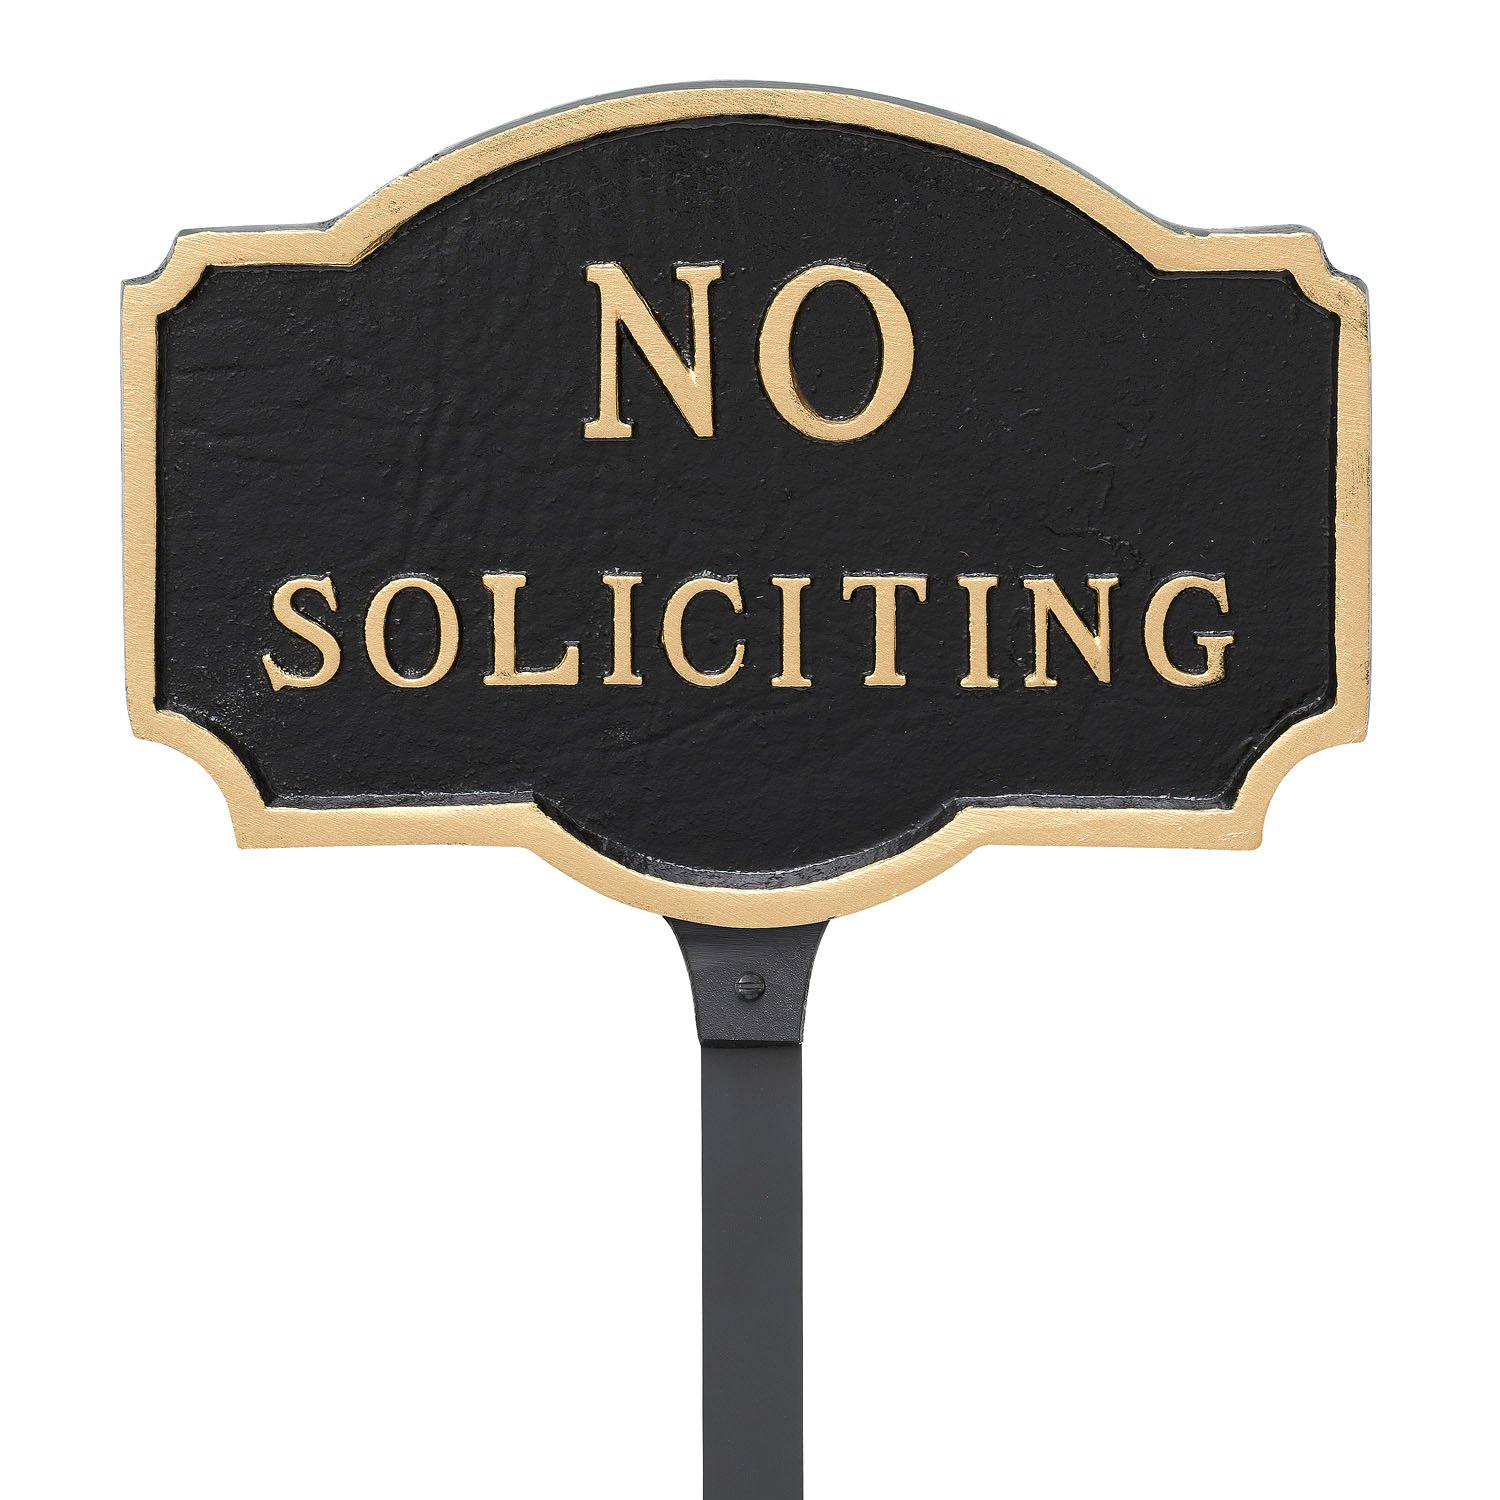 Montague Metal Products 4.5'' x 7.15'' Petite No Soliciting Statement Plaque with 23'' Stake, Black/Gold